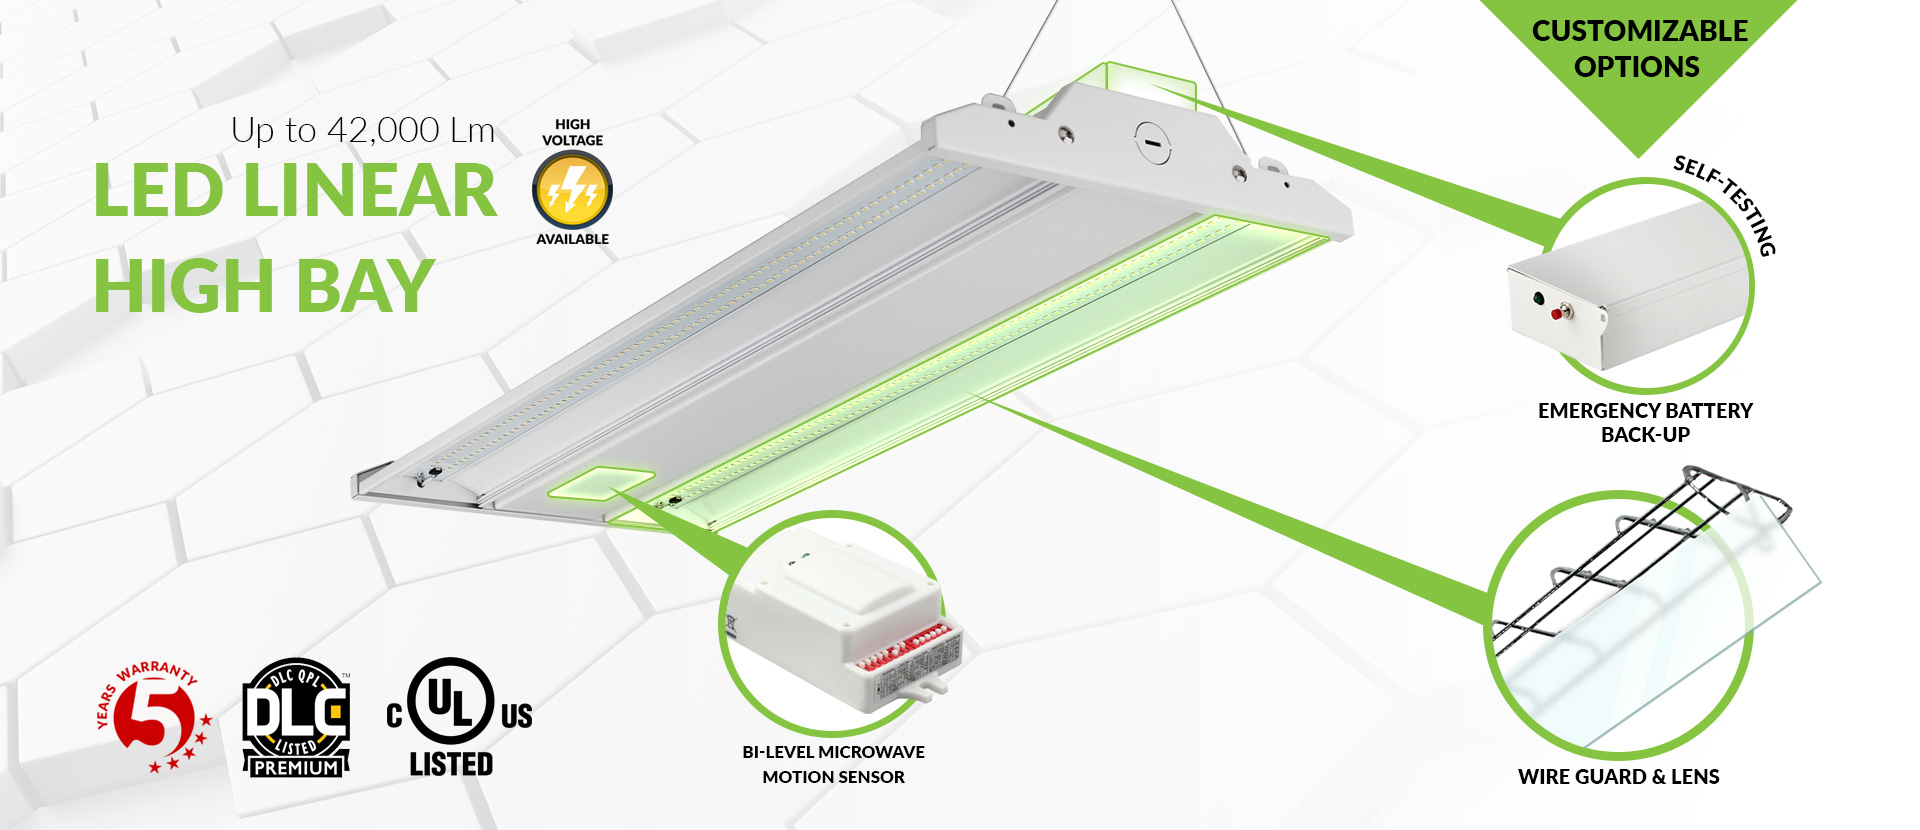 LED High Bay Linear Light Fixture